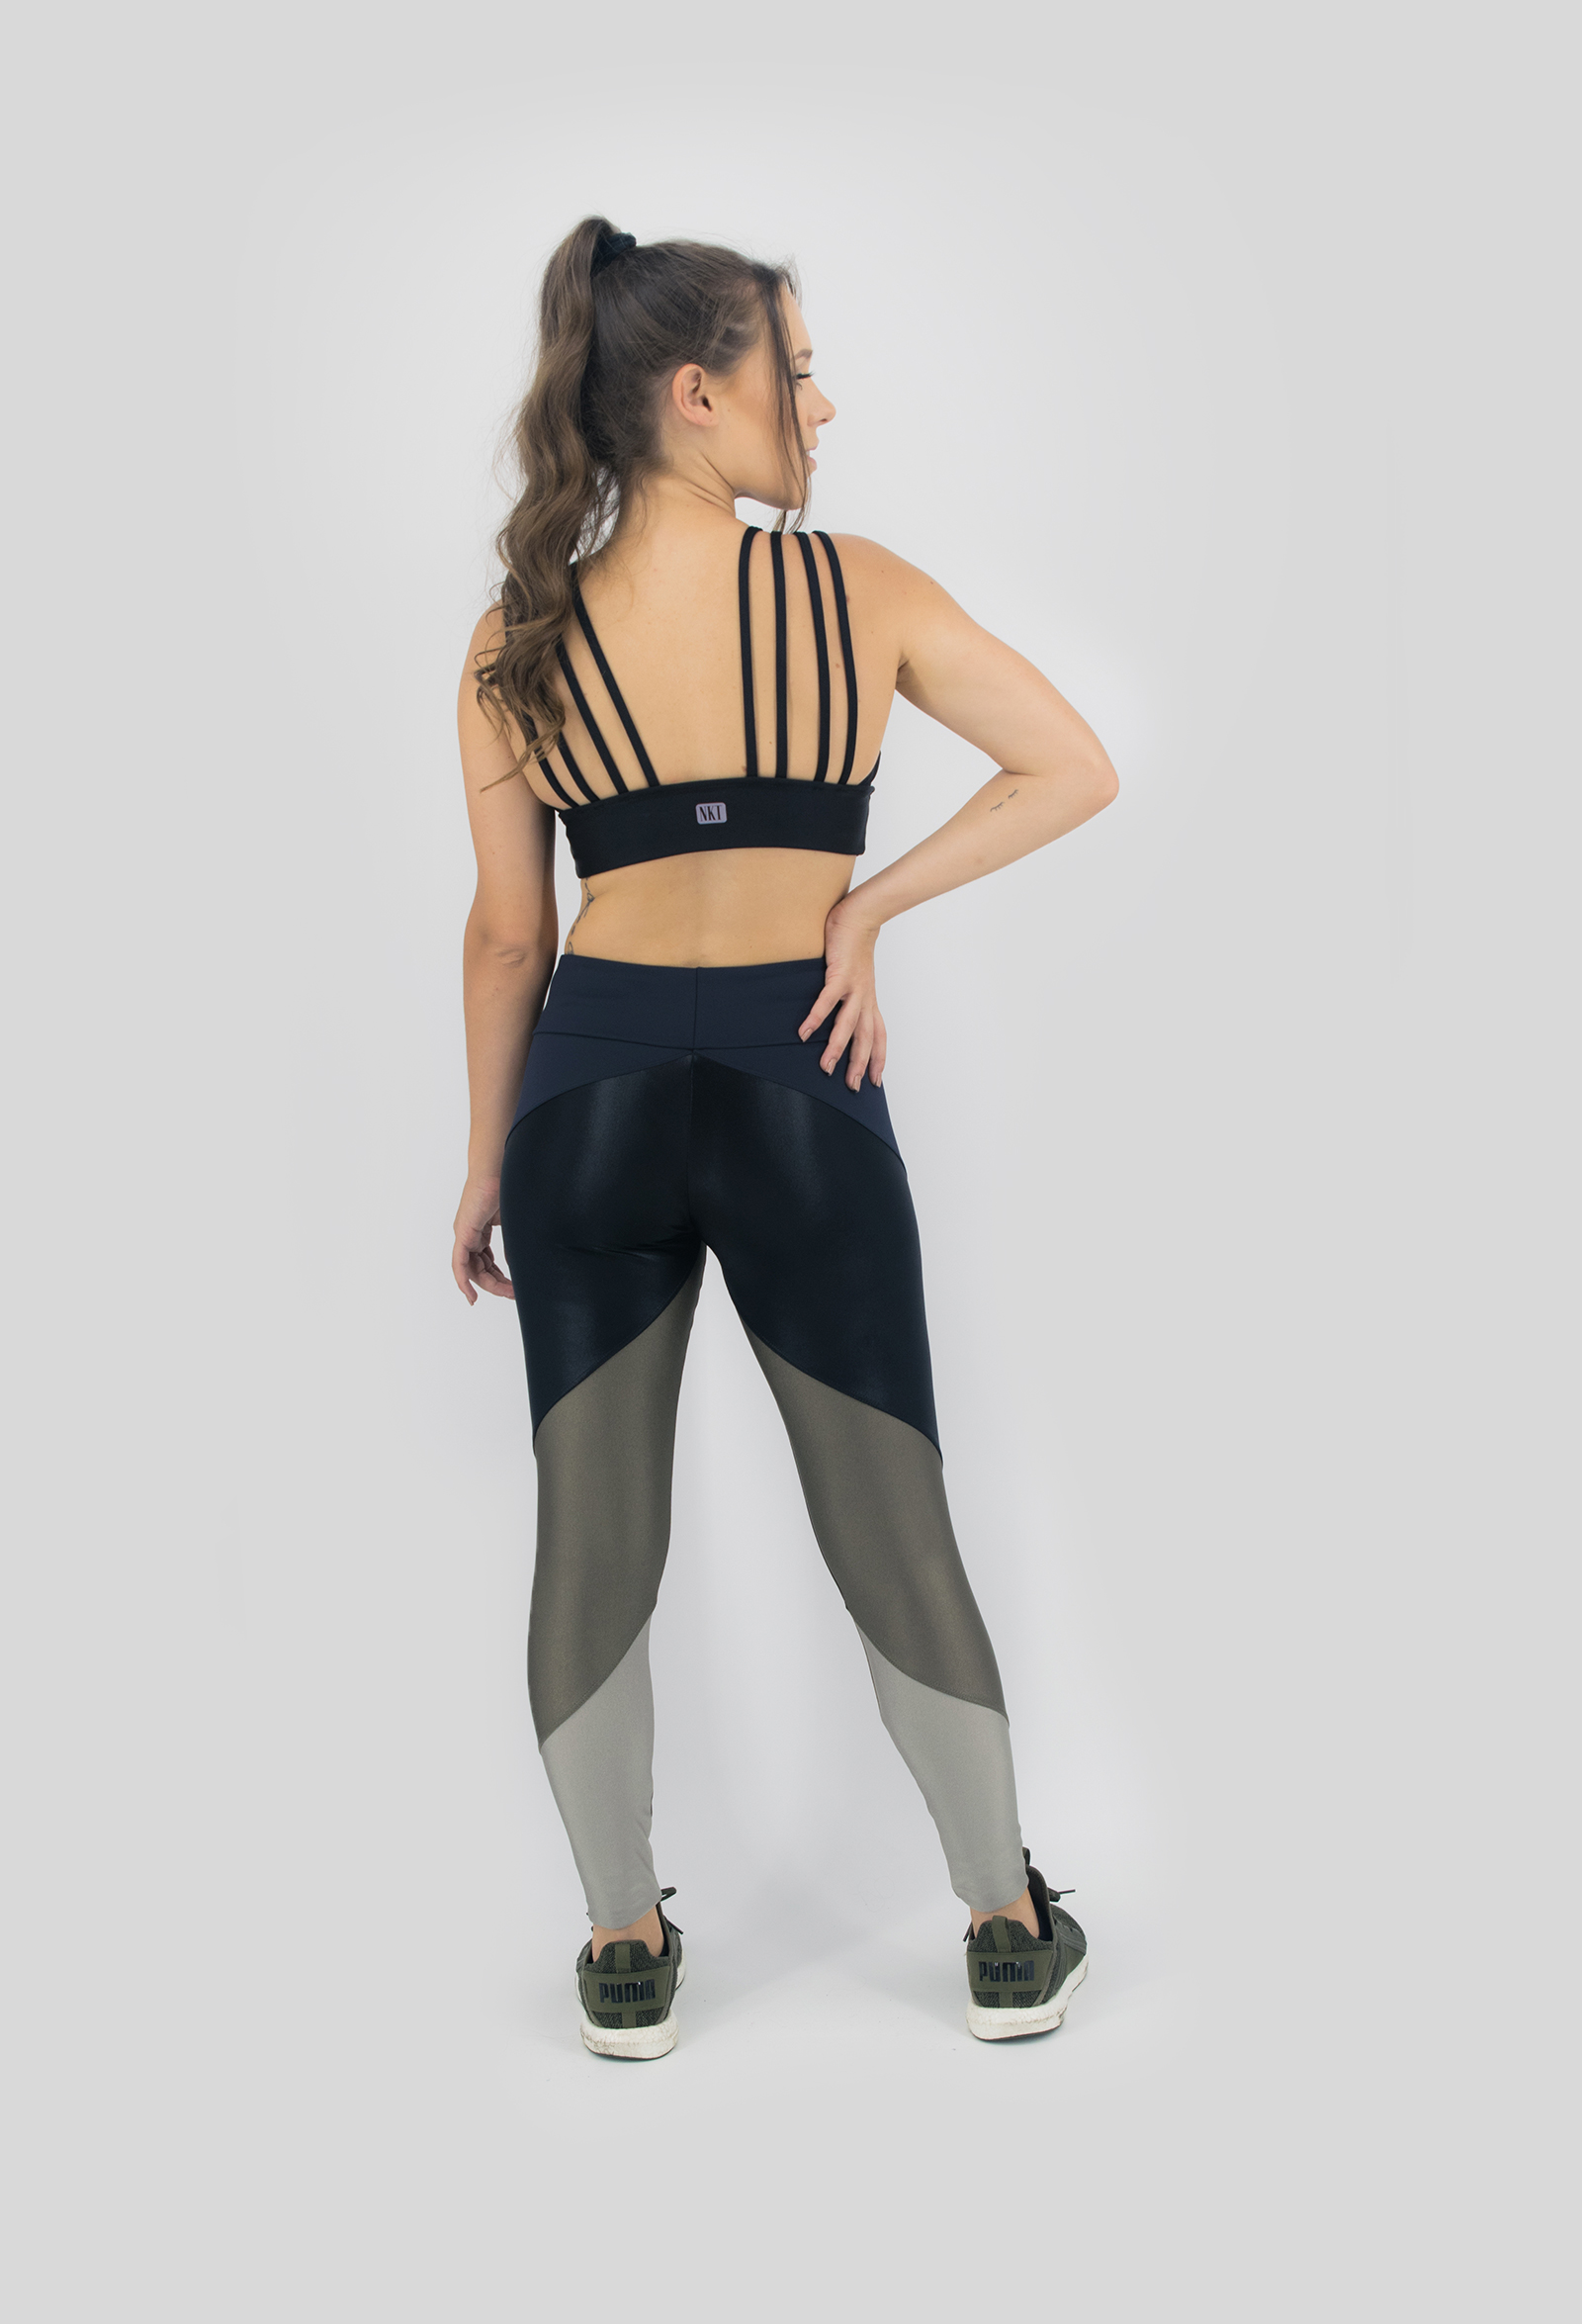 Top Fun Preto Cirré, Coleção Move Your Body - NKT Fitwear Moda Fitness